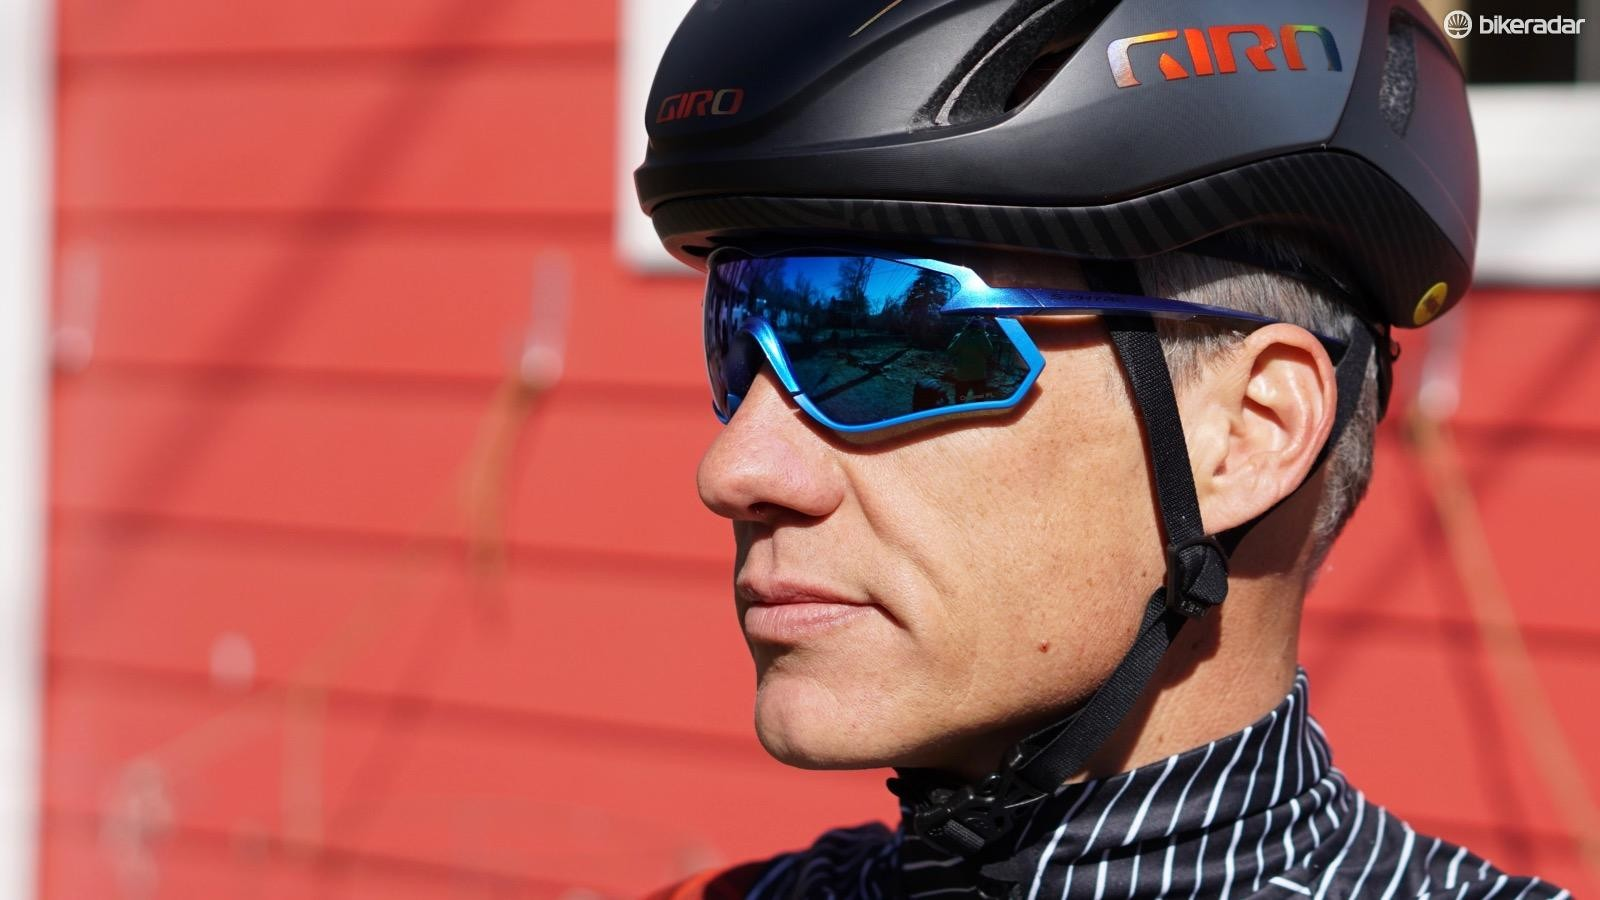 Shimano has two lens tints for its new S-Phyre glasses. One is photochromatic, meaning it darkens under bright light